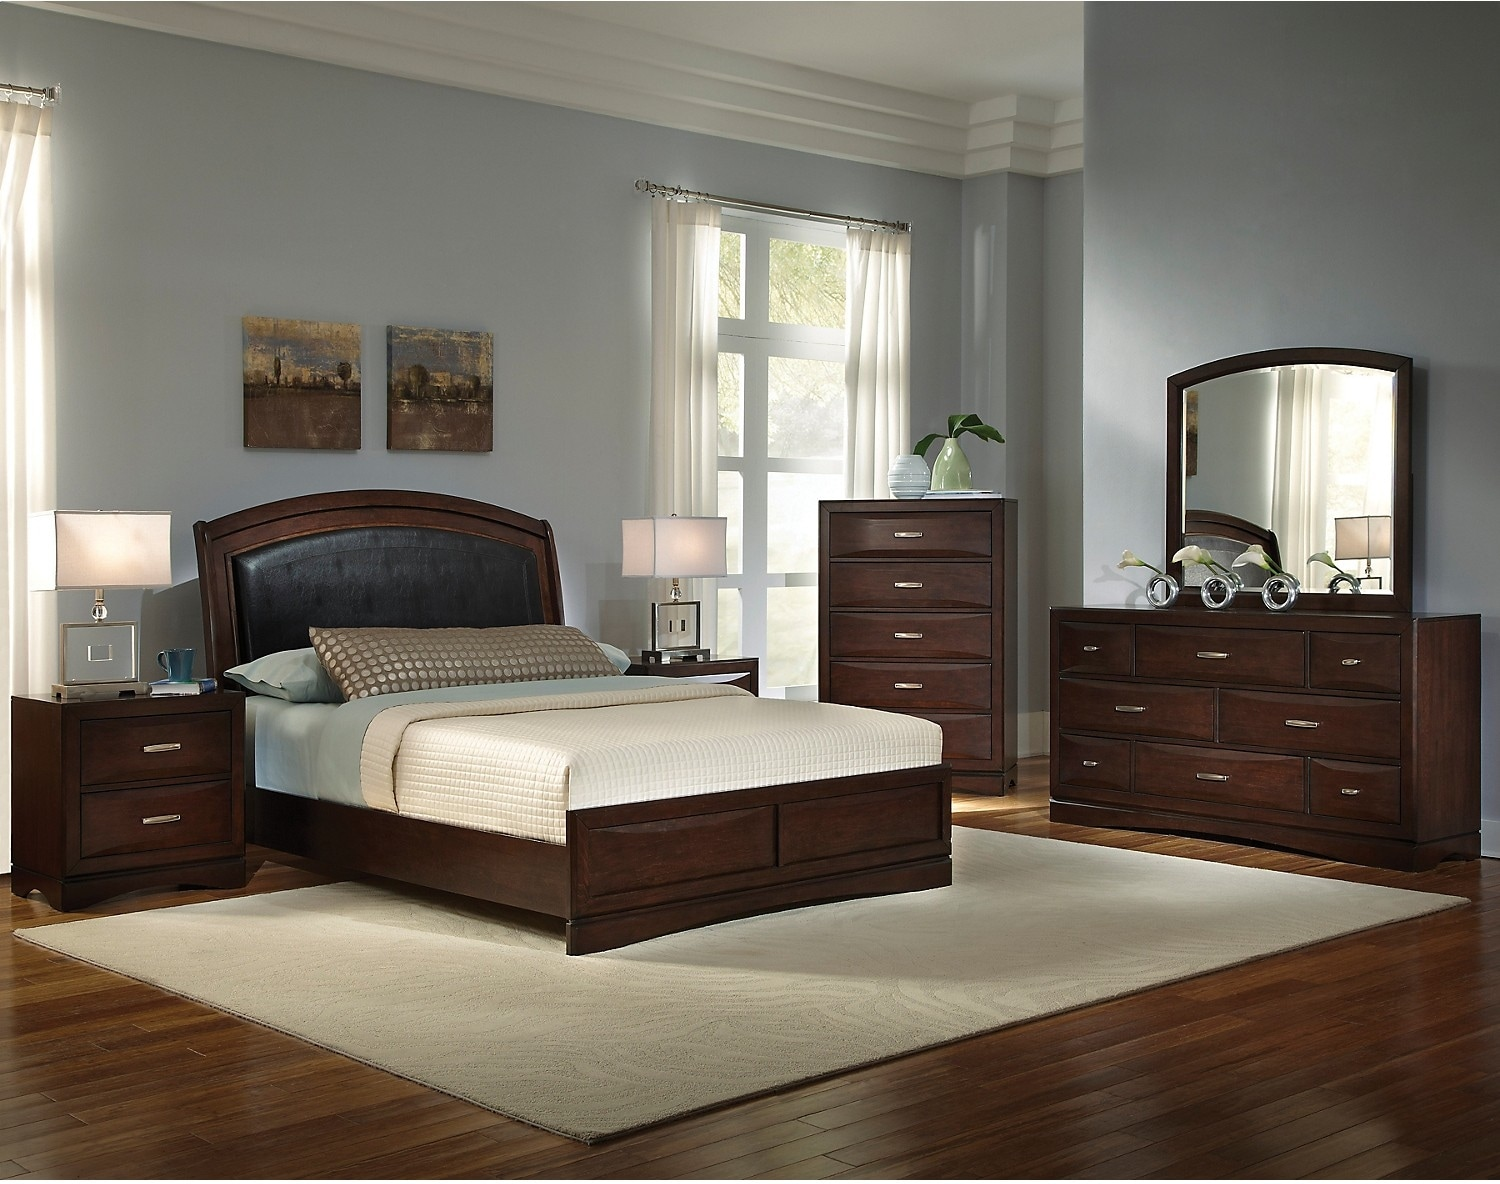 Beverly 8 piece queen bedroom set the brick for Bedroom sets with mattress included